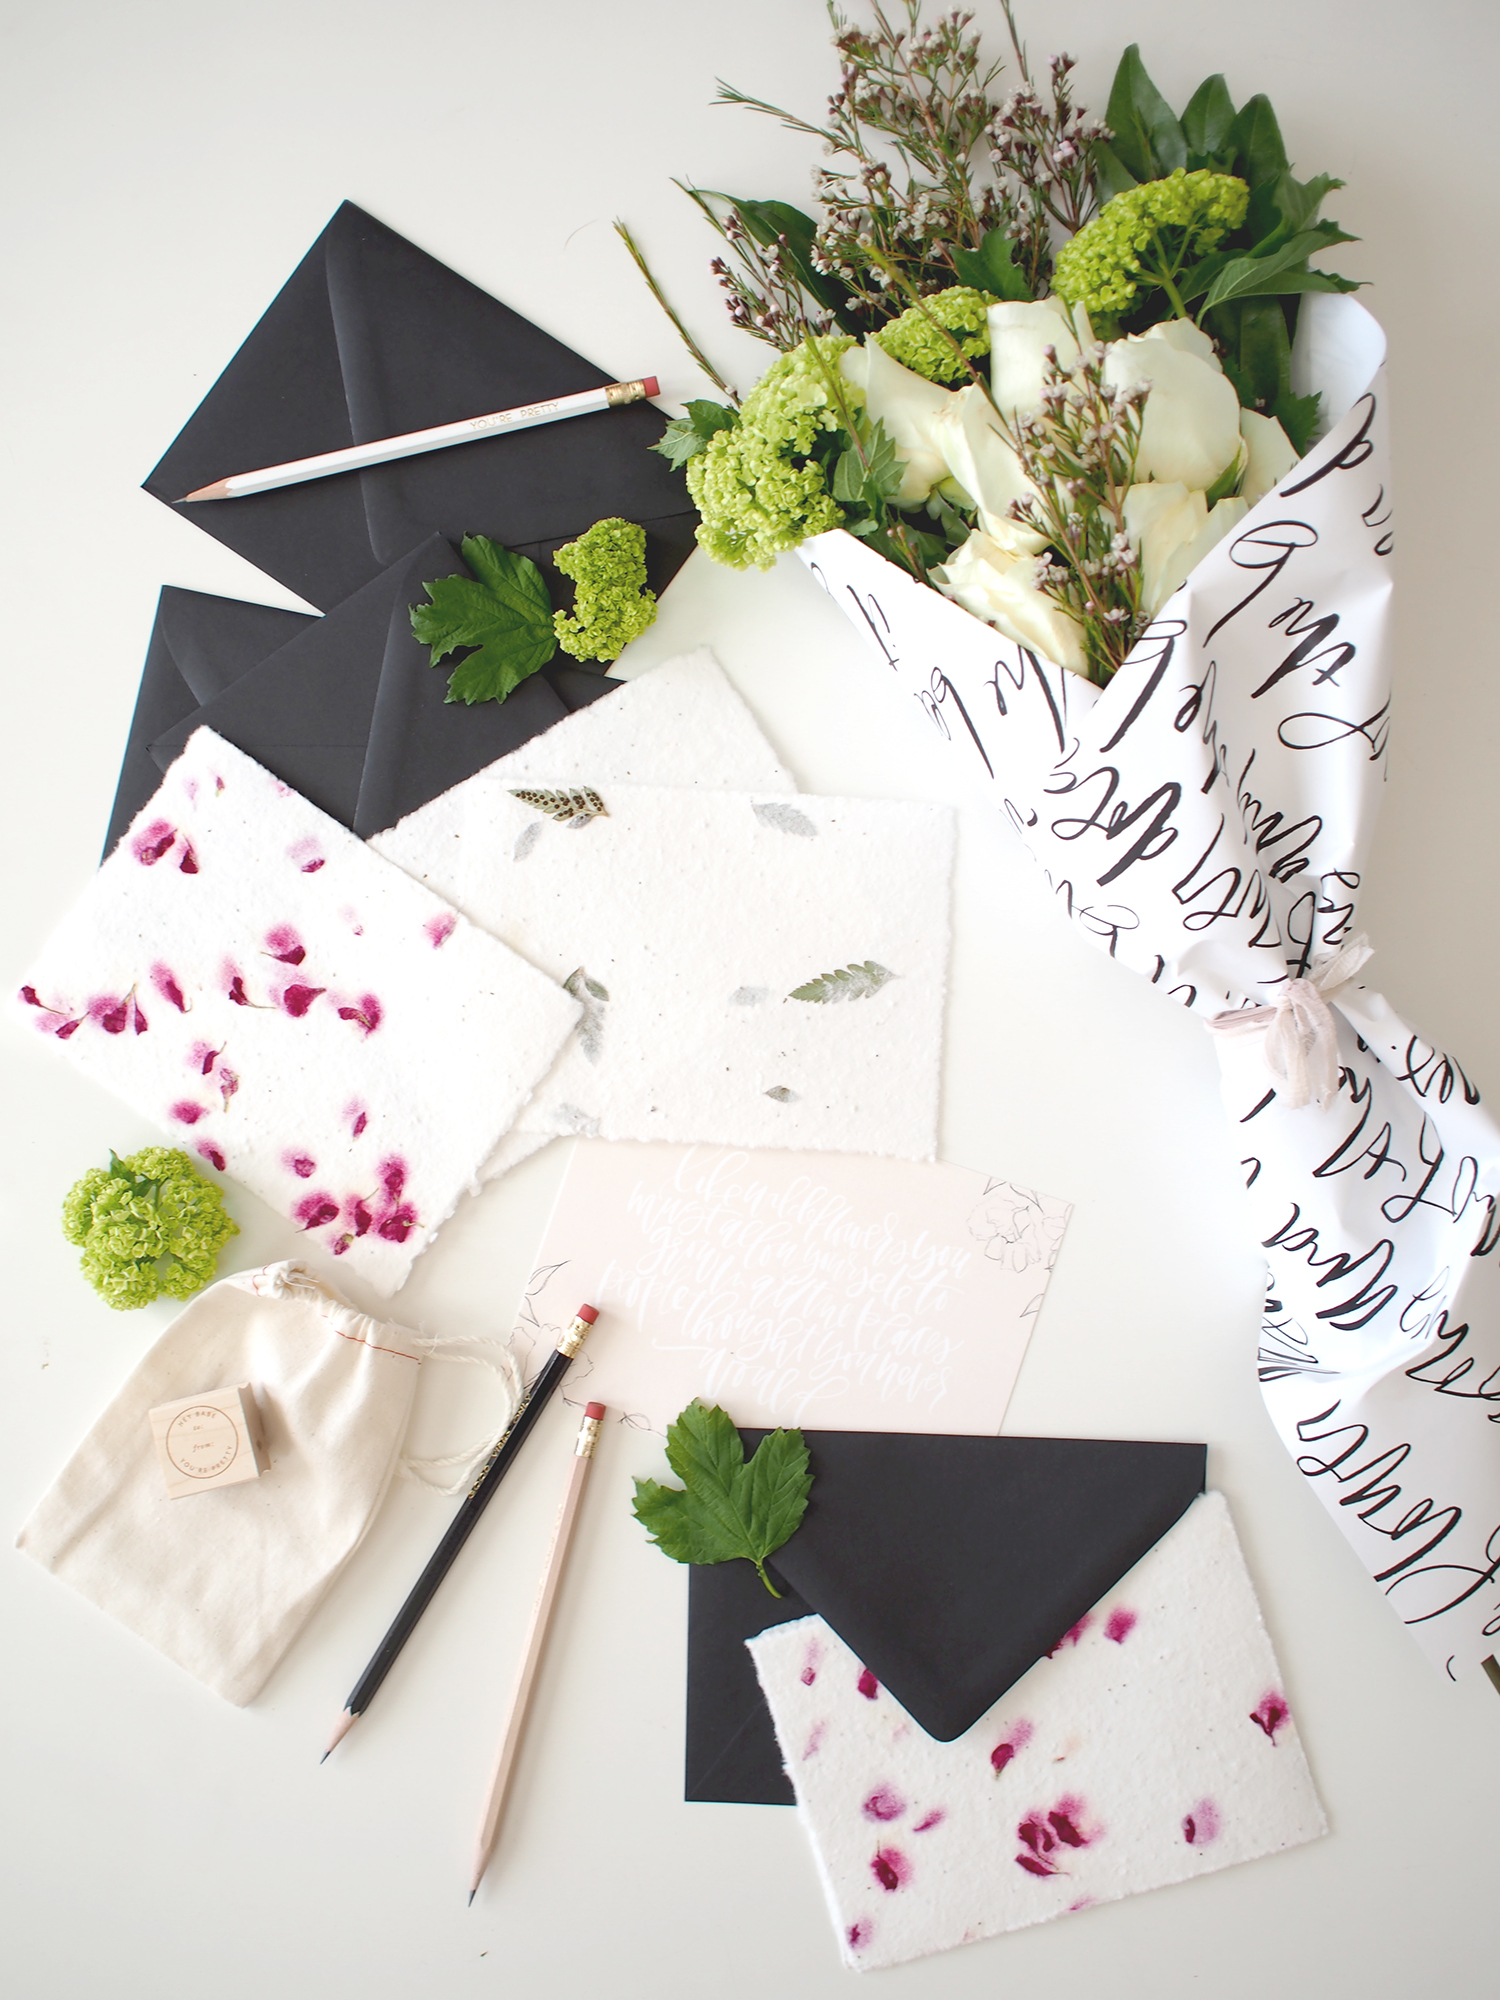 My monthly dose of cool paper inspiration. Photo by The Wilde House.